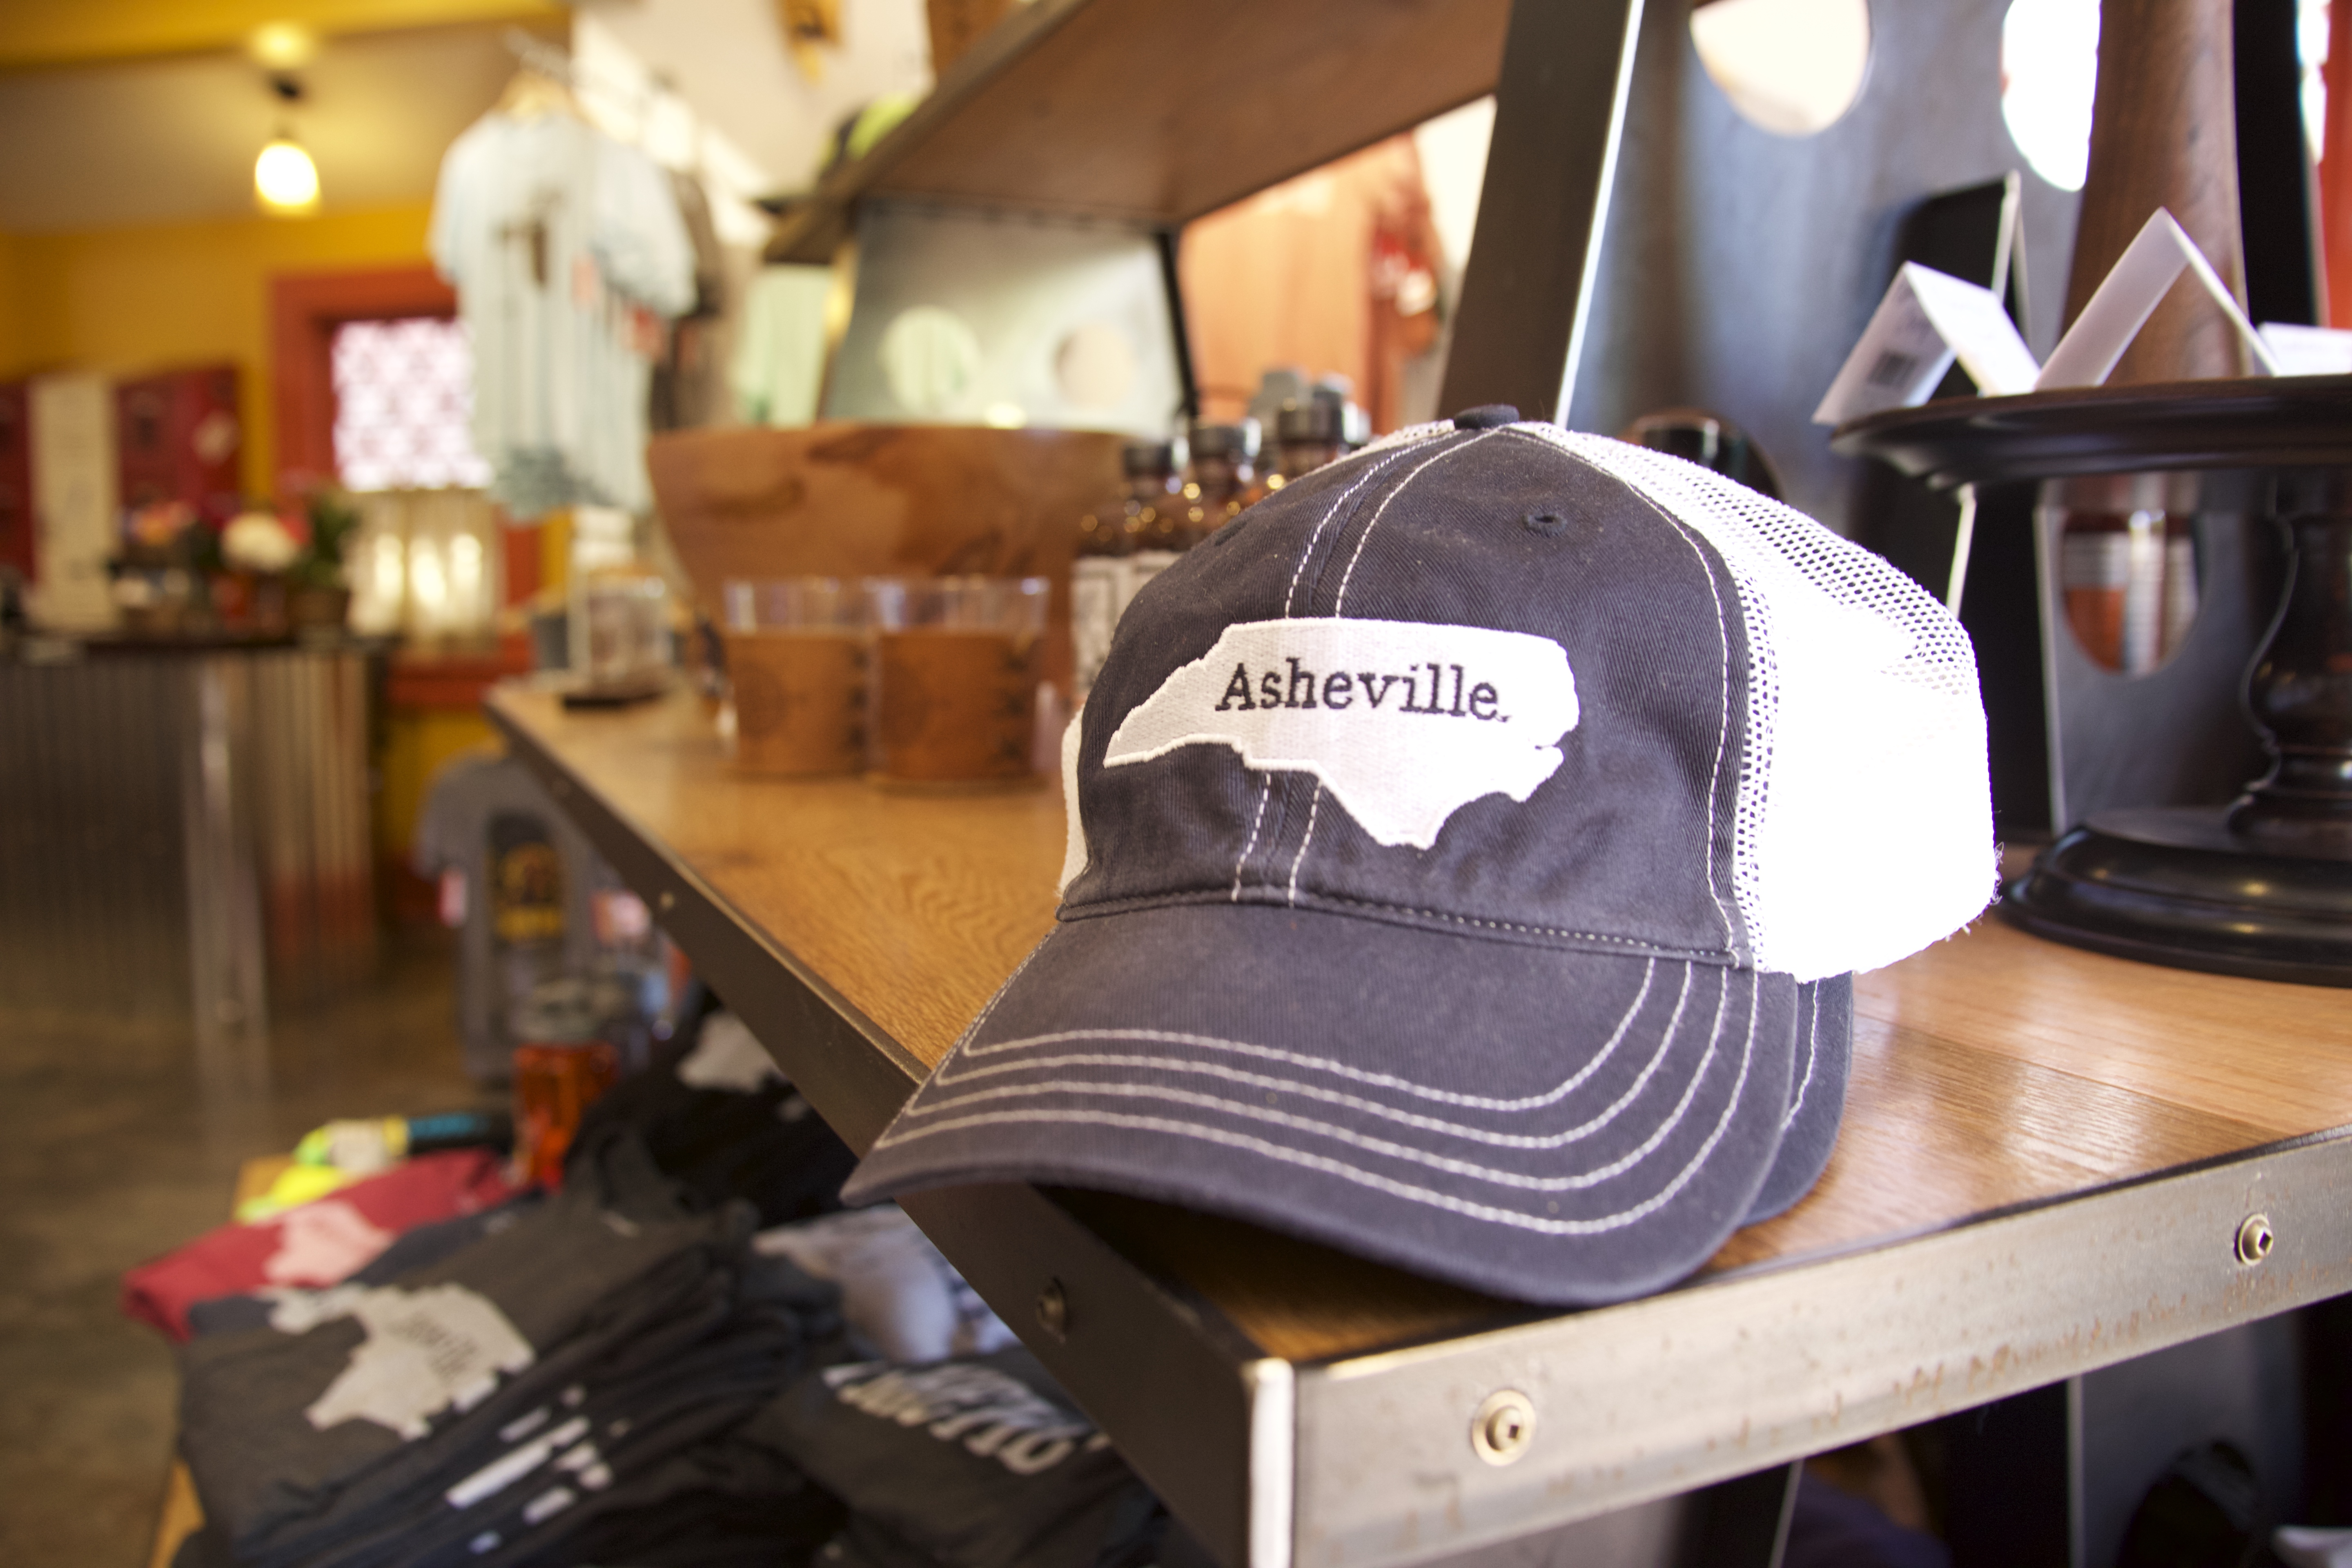 Mtn merch footer2 local flavor avl visit explore shop asheville